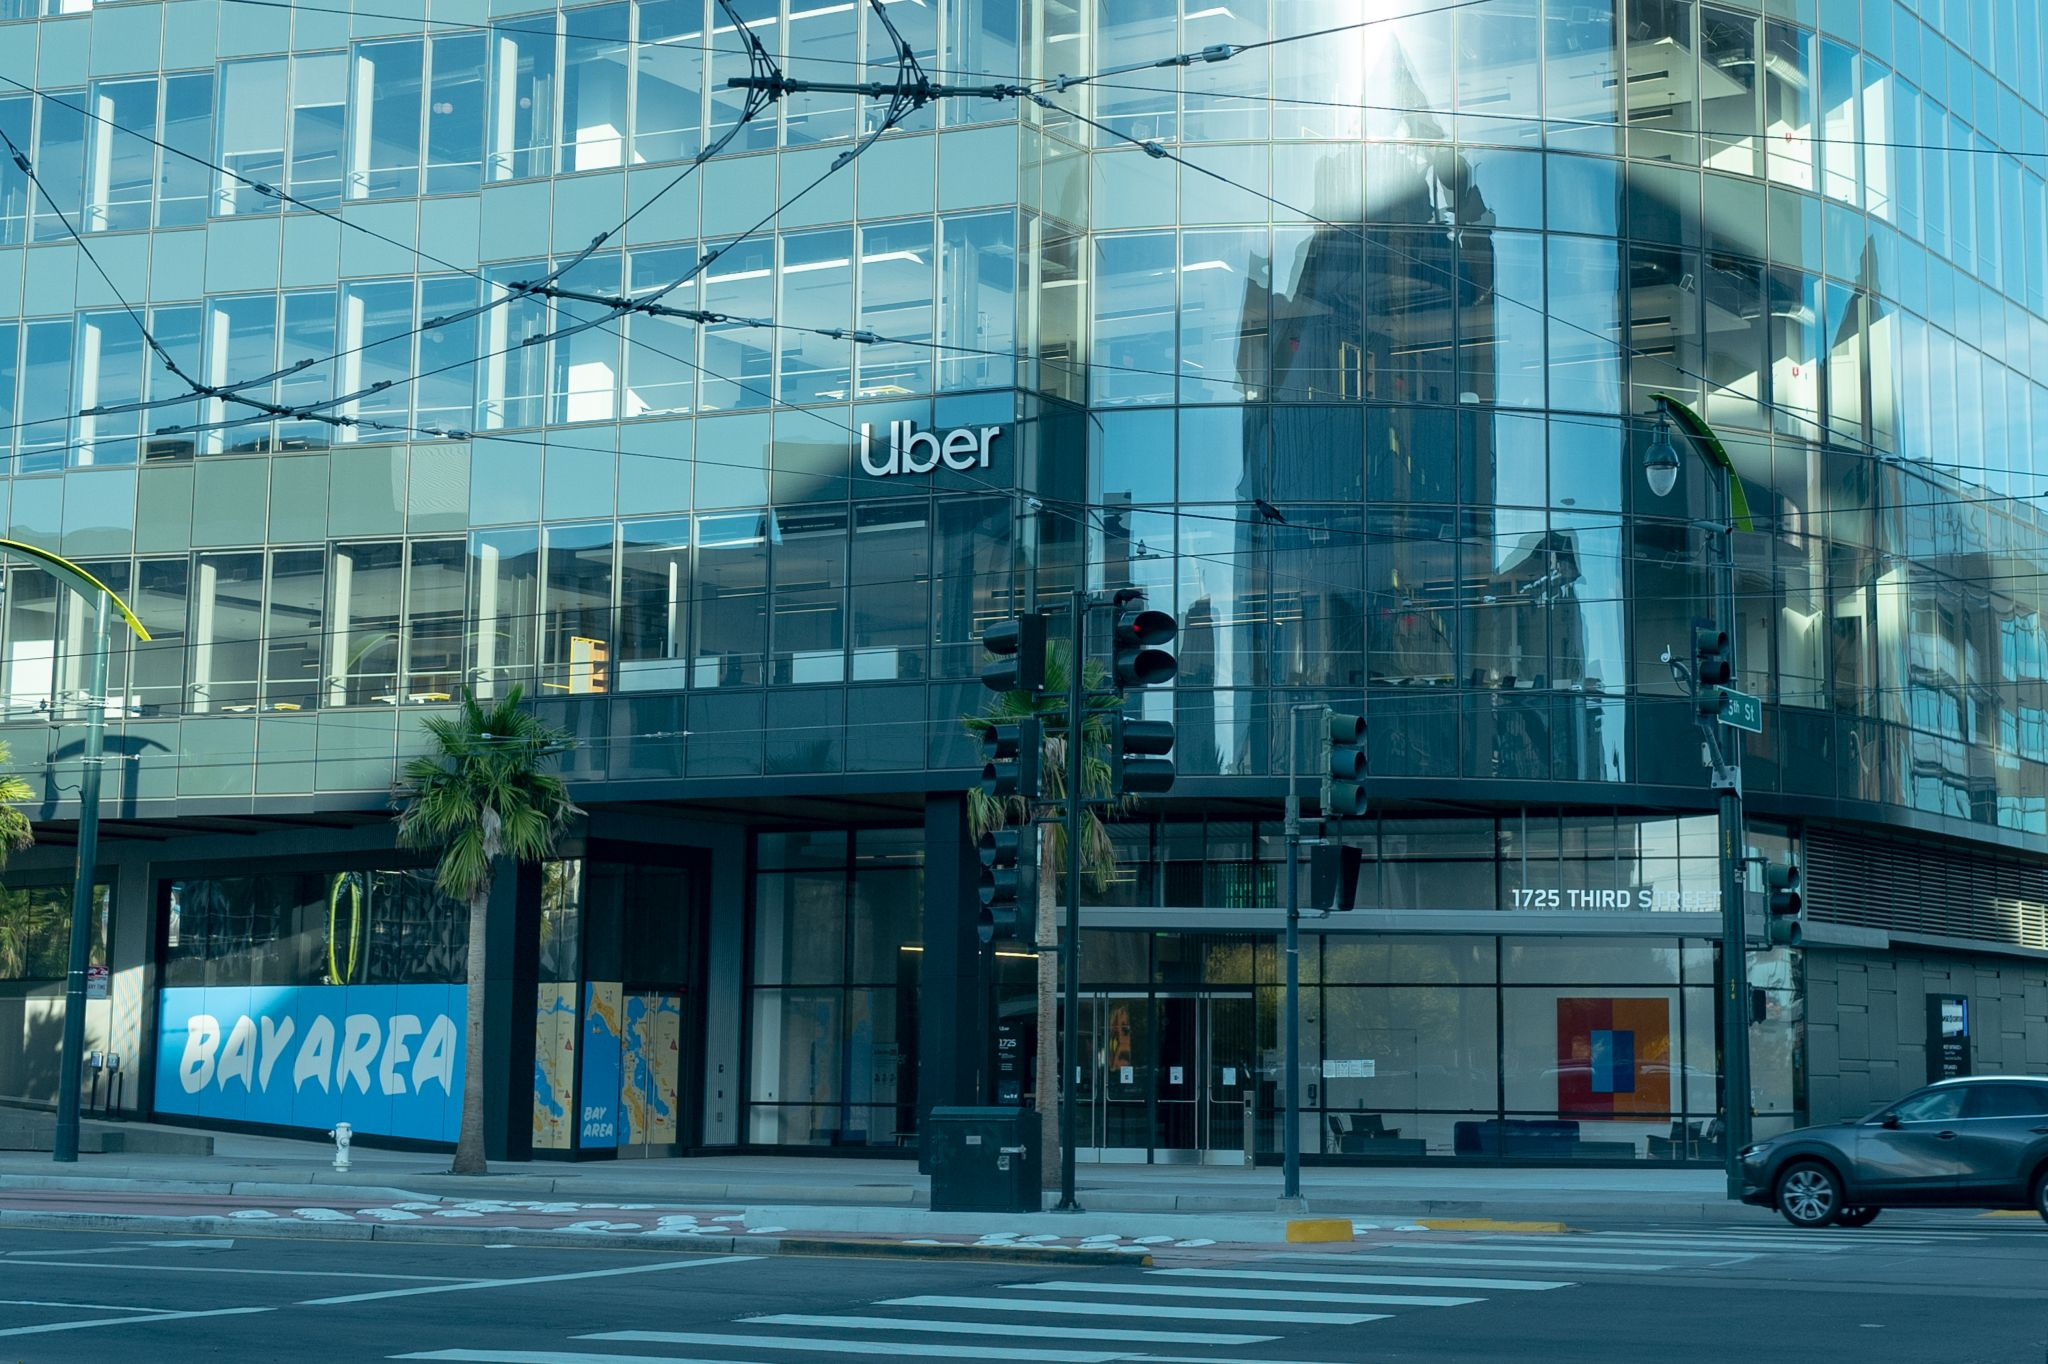 Uber reportedly looking to unload large chunk of office space at new SF headquarters